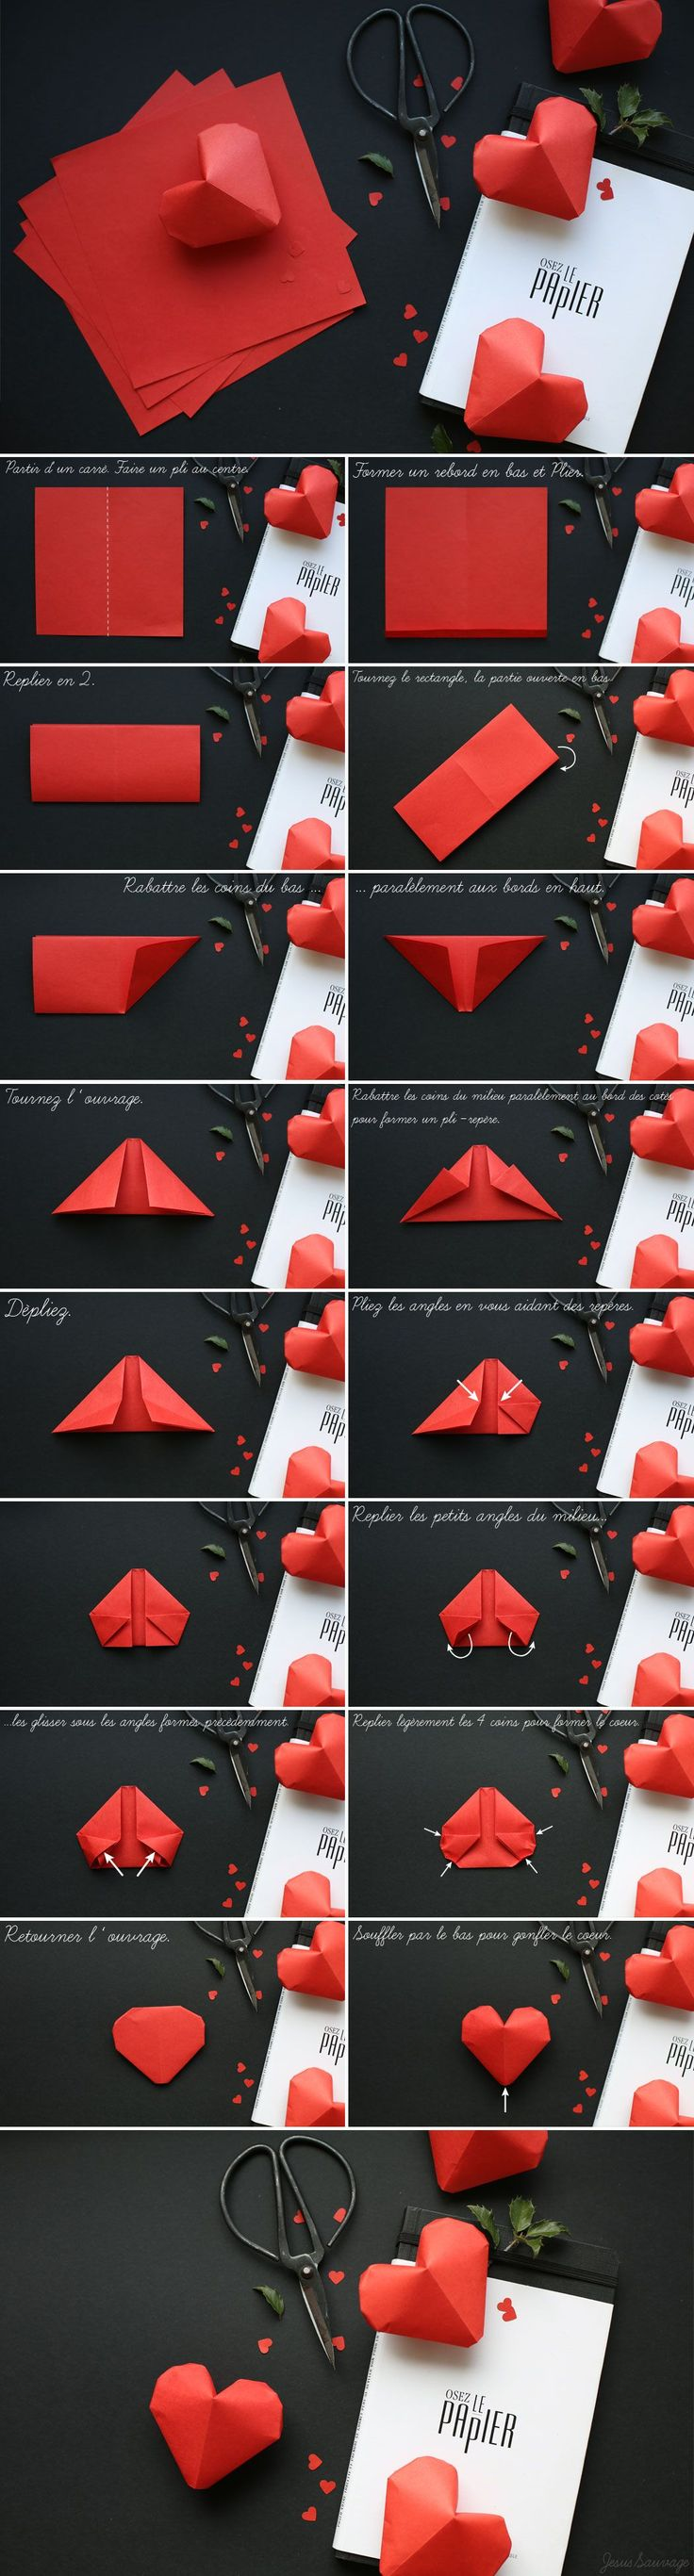 DIY Origami Heart Tutorial